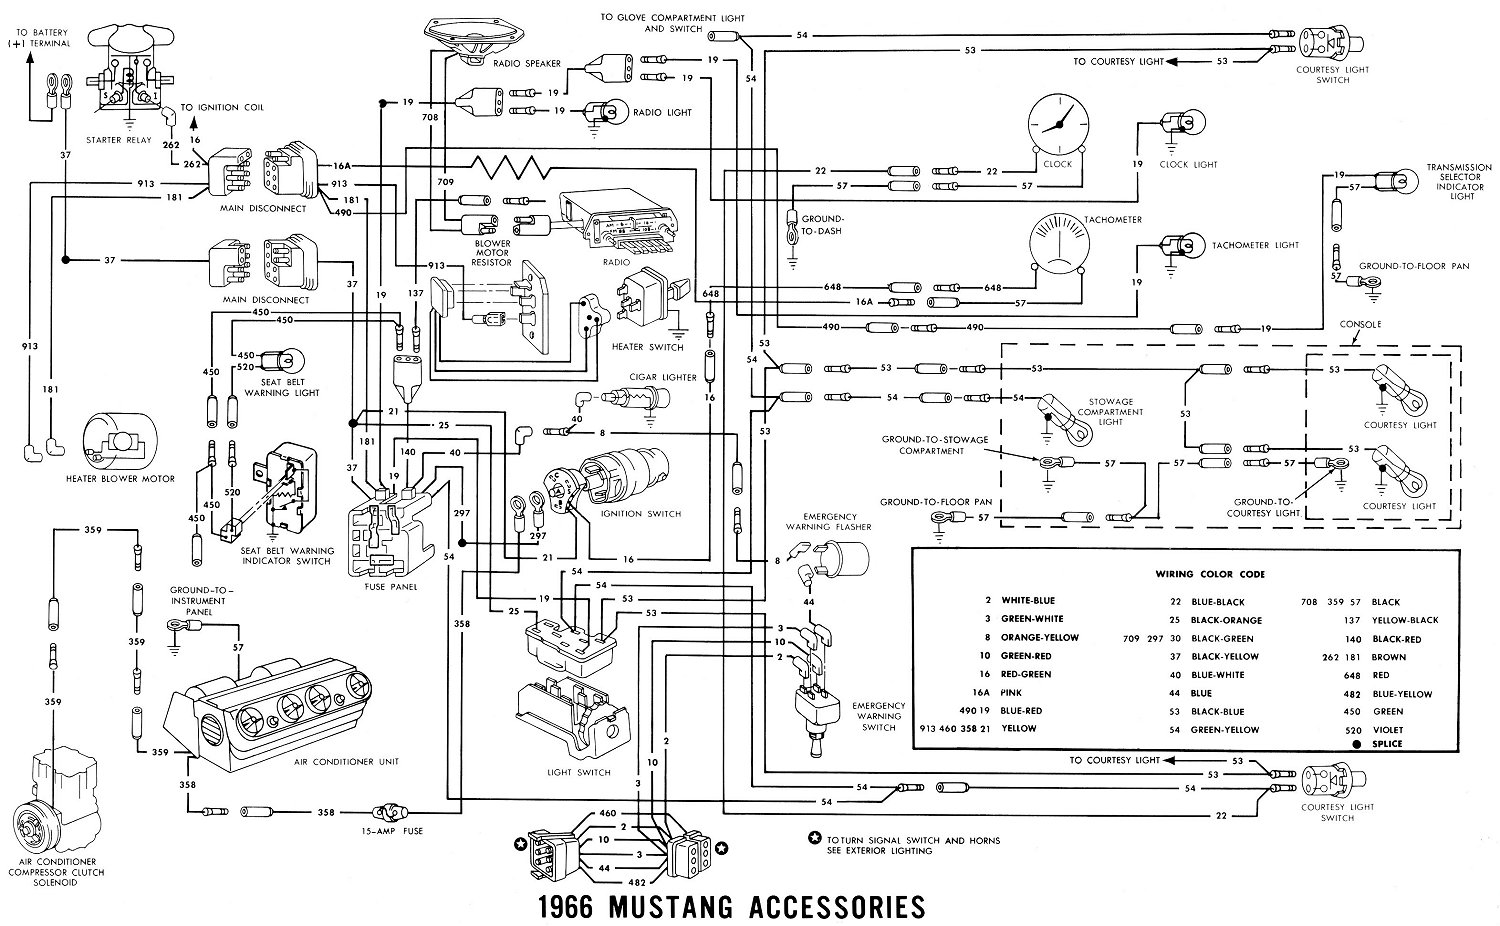 hight resolution of 1968 ford mustang wiring harness diagram completed wiring diagrams 68 mustang wiring diagram master 68 mustang dash wiring diagram